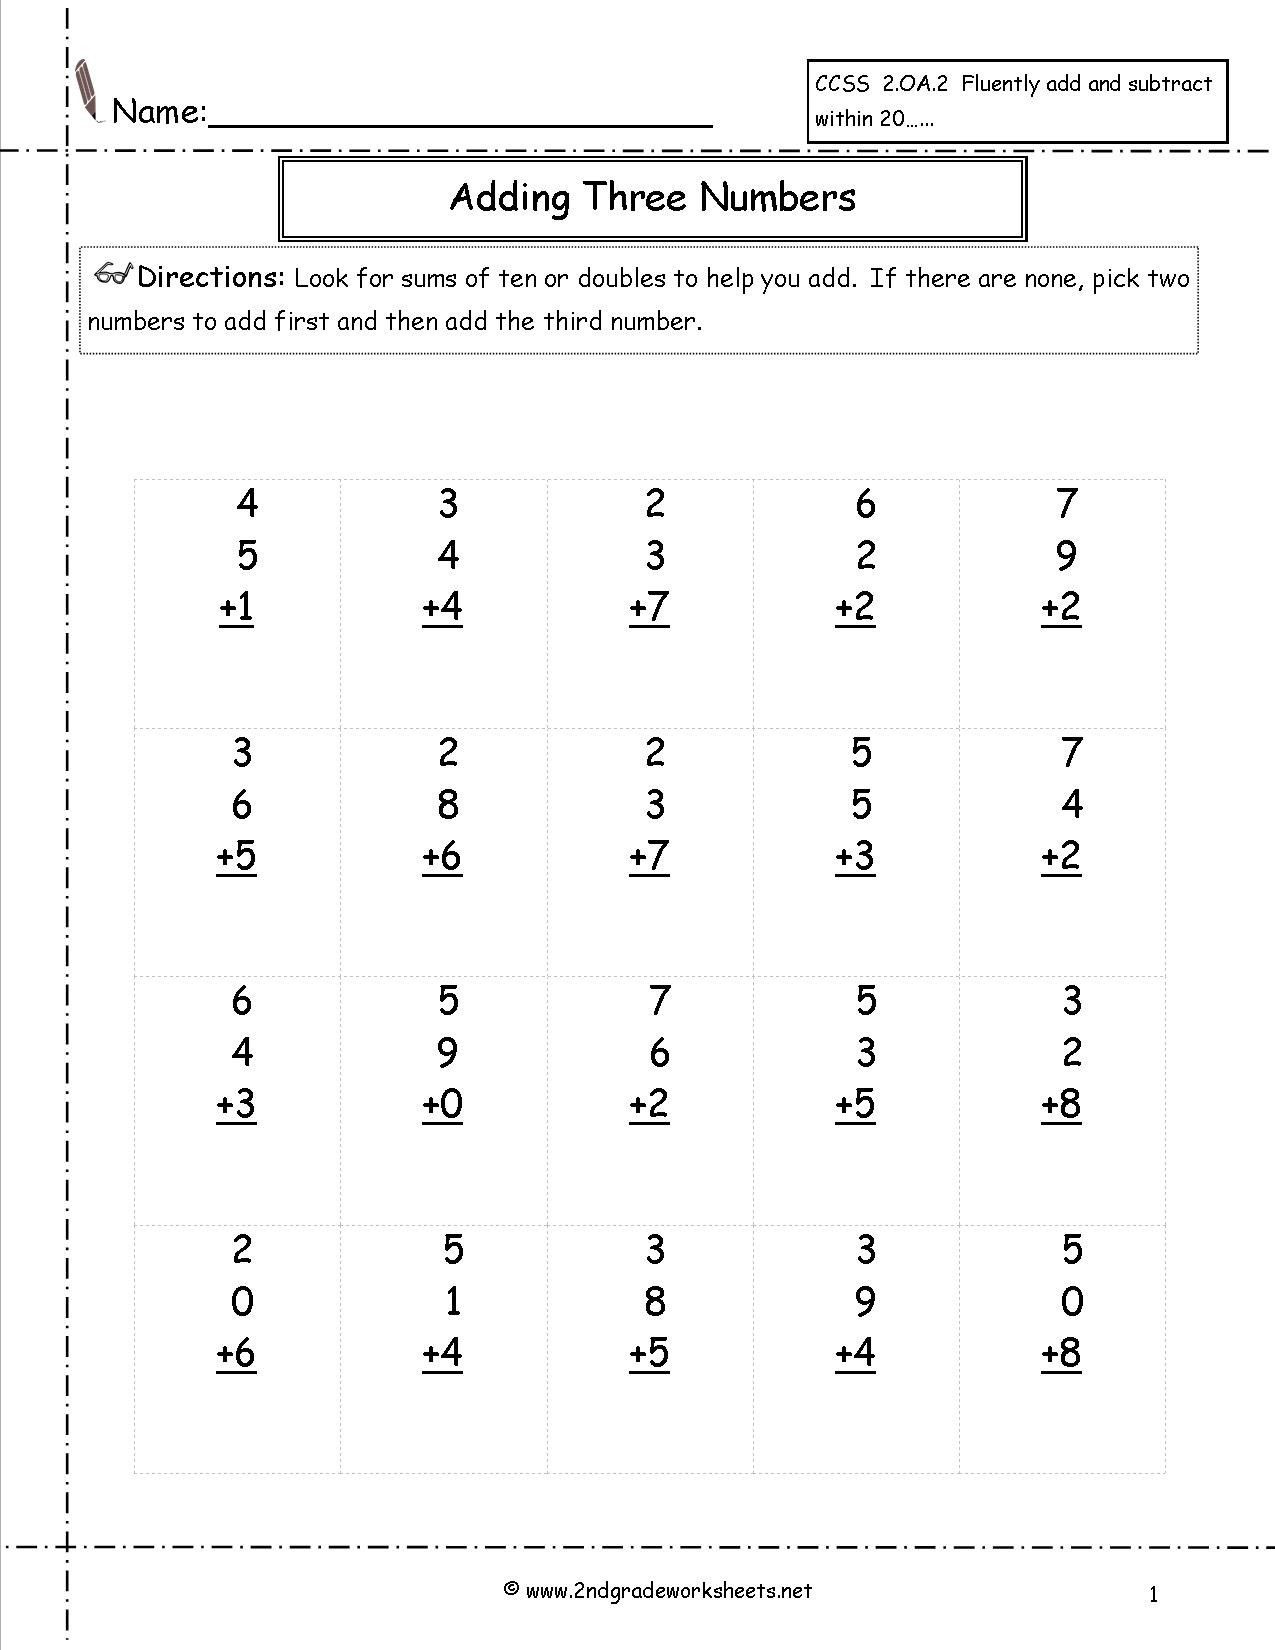 Adding Three Number Worksheets 4 Free Math Worksheets Second Grade 2 Addition Add 3 Single